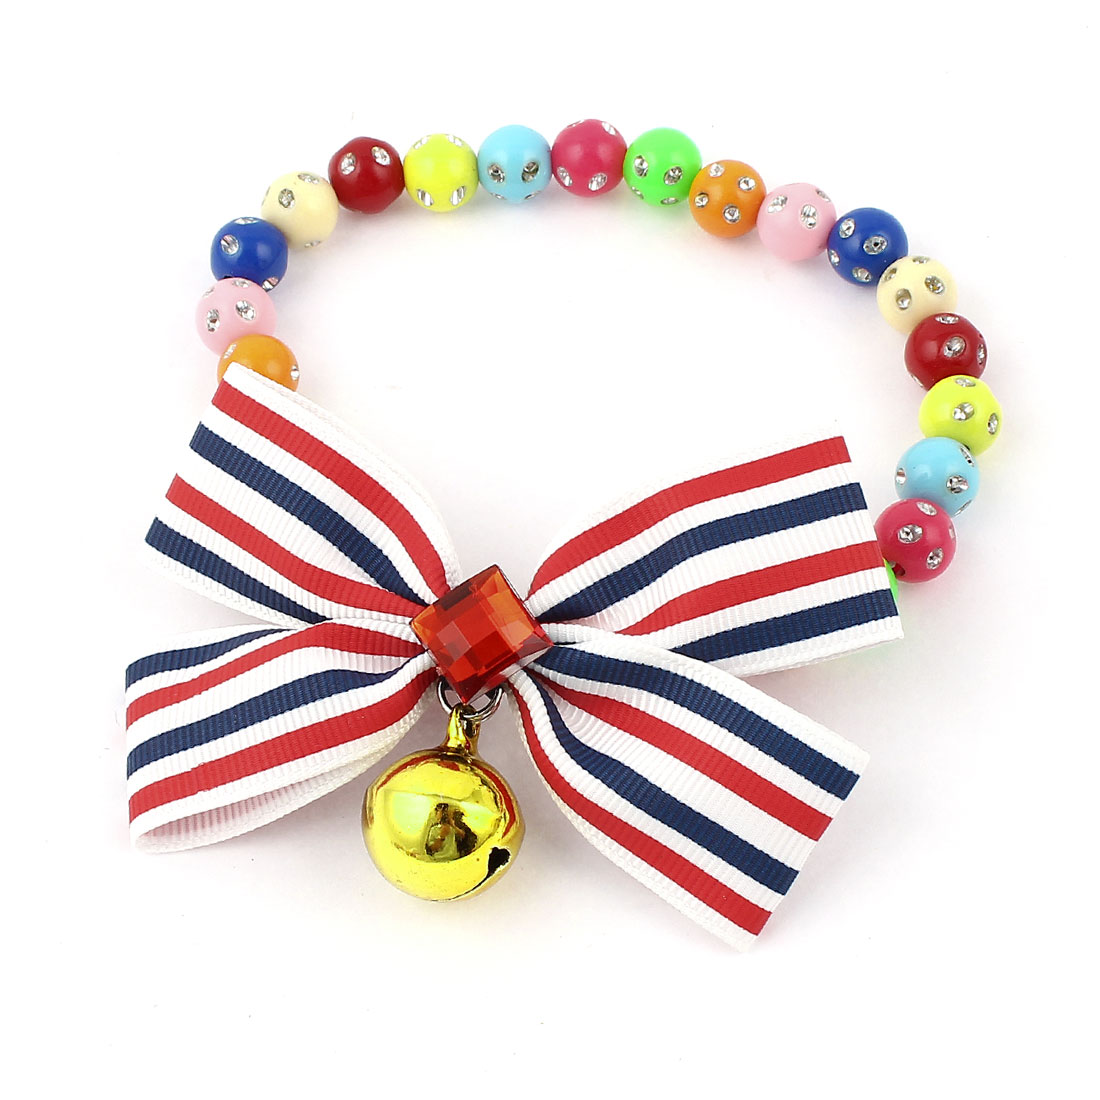 Faux Crystal Bowtie Accent Pet Dog Plastic Beads Collar Necklace Assorted Color XS